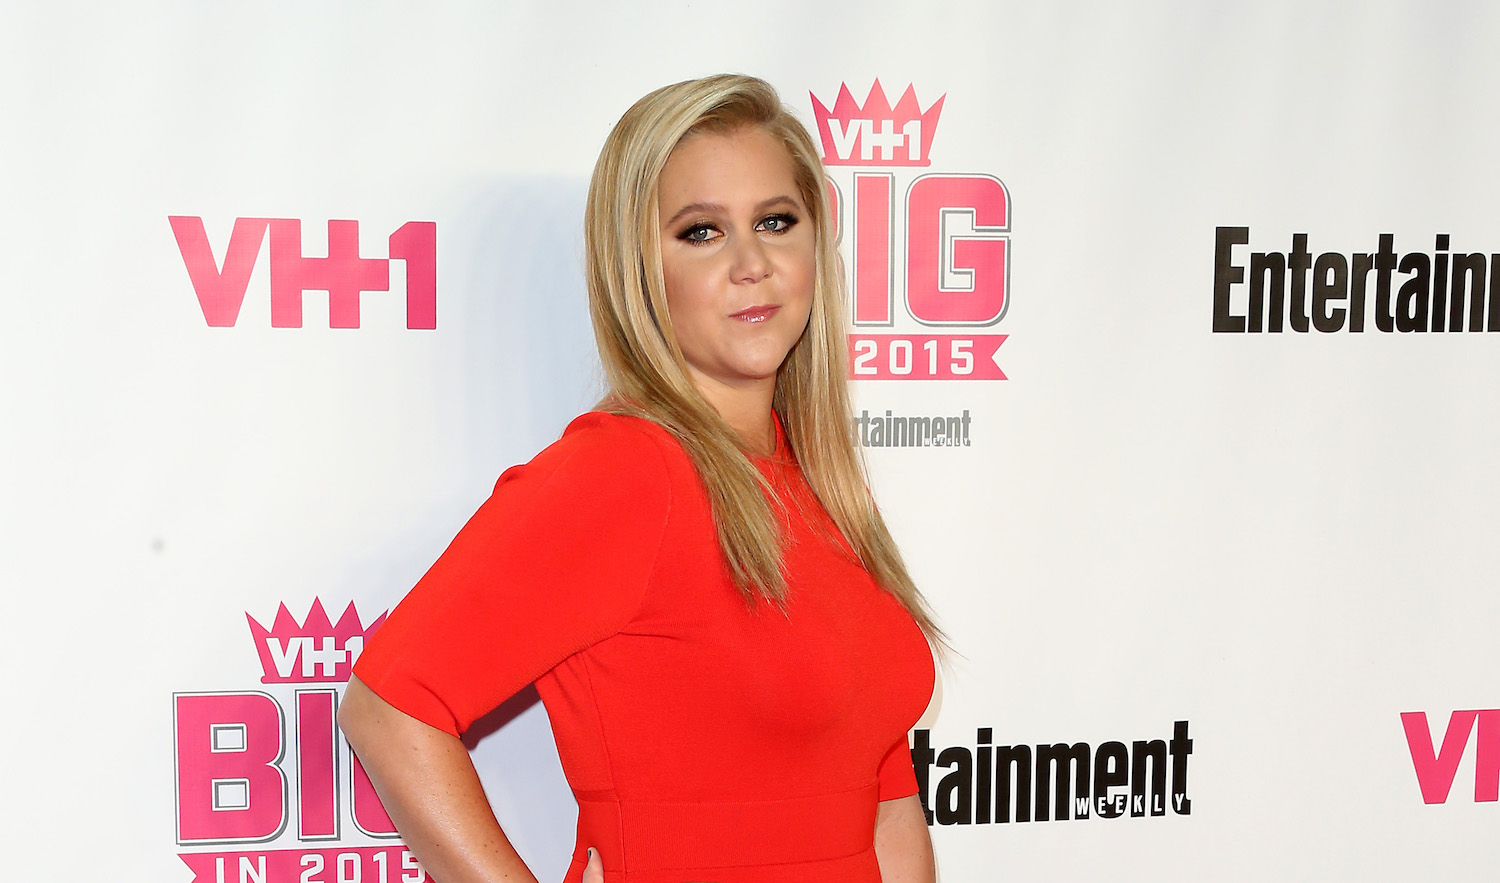 WEST HOLLYWOOD, CA - NOVEMBER 15: Actress Amy Schumer attends VH1 Big in 2015 With Entertainment Weekly Awards at Pacific Design Center on November 15, 2015 in West Hollywood, California. (Photo by Frederick M. Brown/Getty Images)